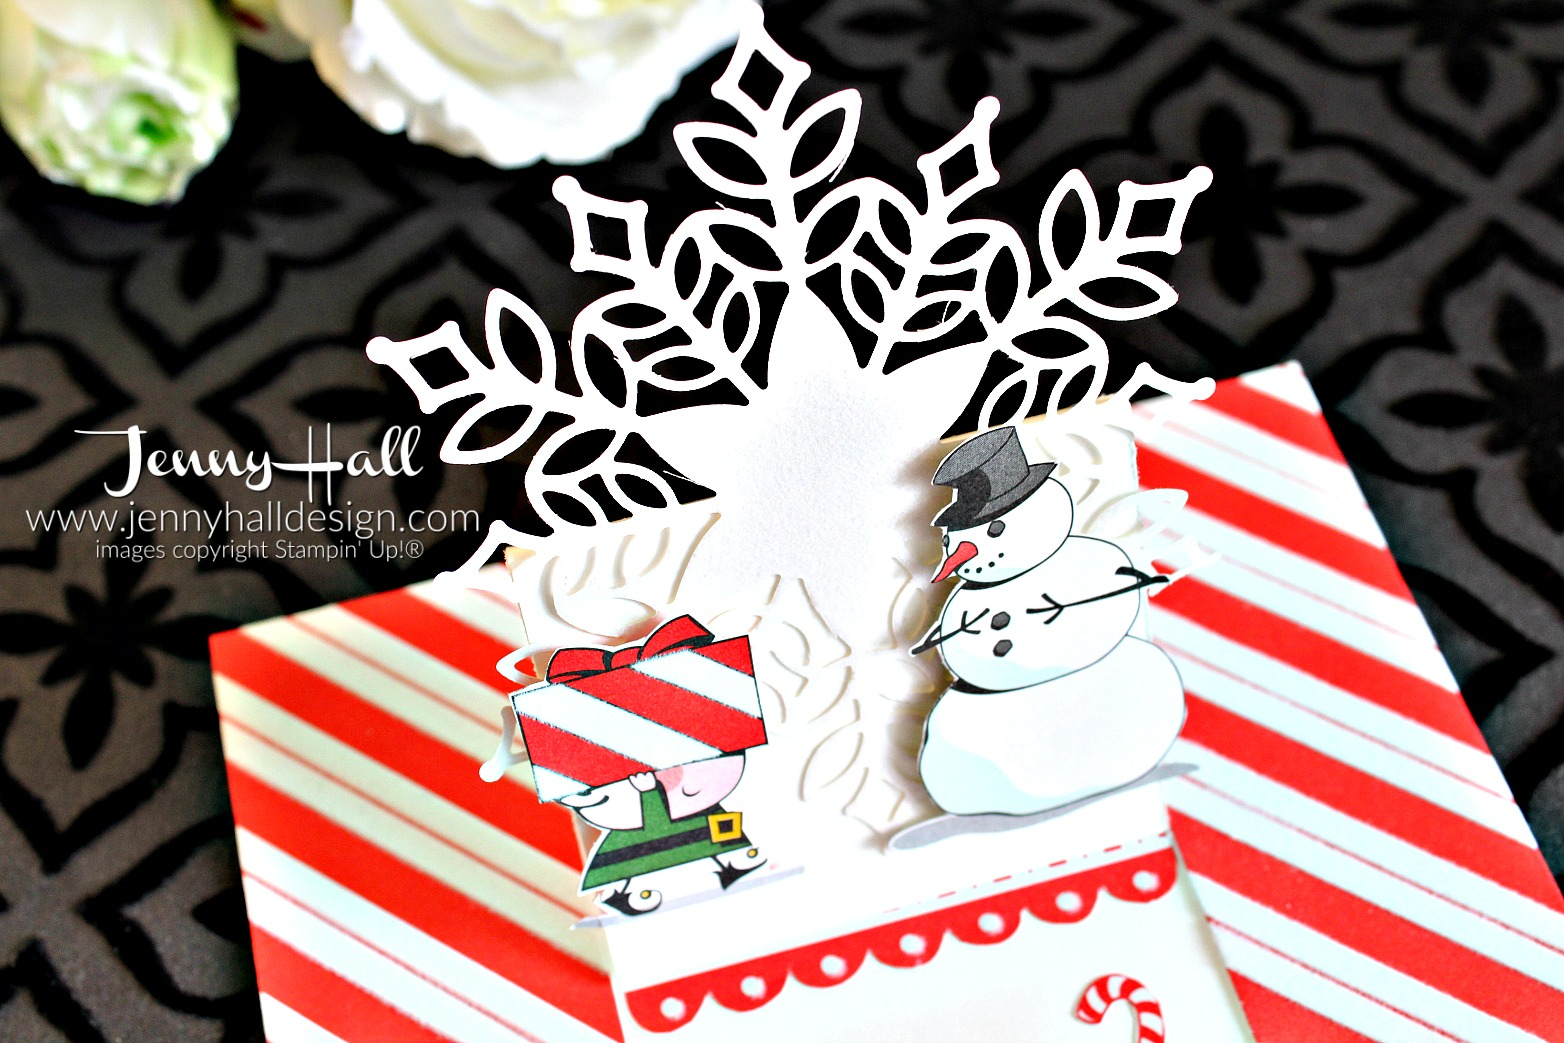 Signs of Santa easel card by www.jennyhalldesign.com #jennyhall #jennyhalldesign #jennystampsup #stampinup #stamping #christmascard #diychristmas #easelcard #addinktivedesigns #signsofsanta #santasworkshopdsp #snowflakeshowcase #snowfallthinlits #papercraft #artsandcrafts #freeartlesson #stepbystepinstructions #buyonline #design #snowflake #cardmaking #crafty #beinspireddesignteam